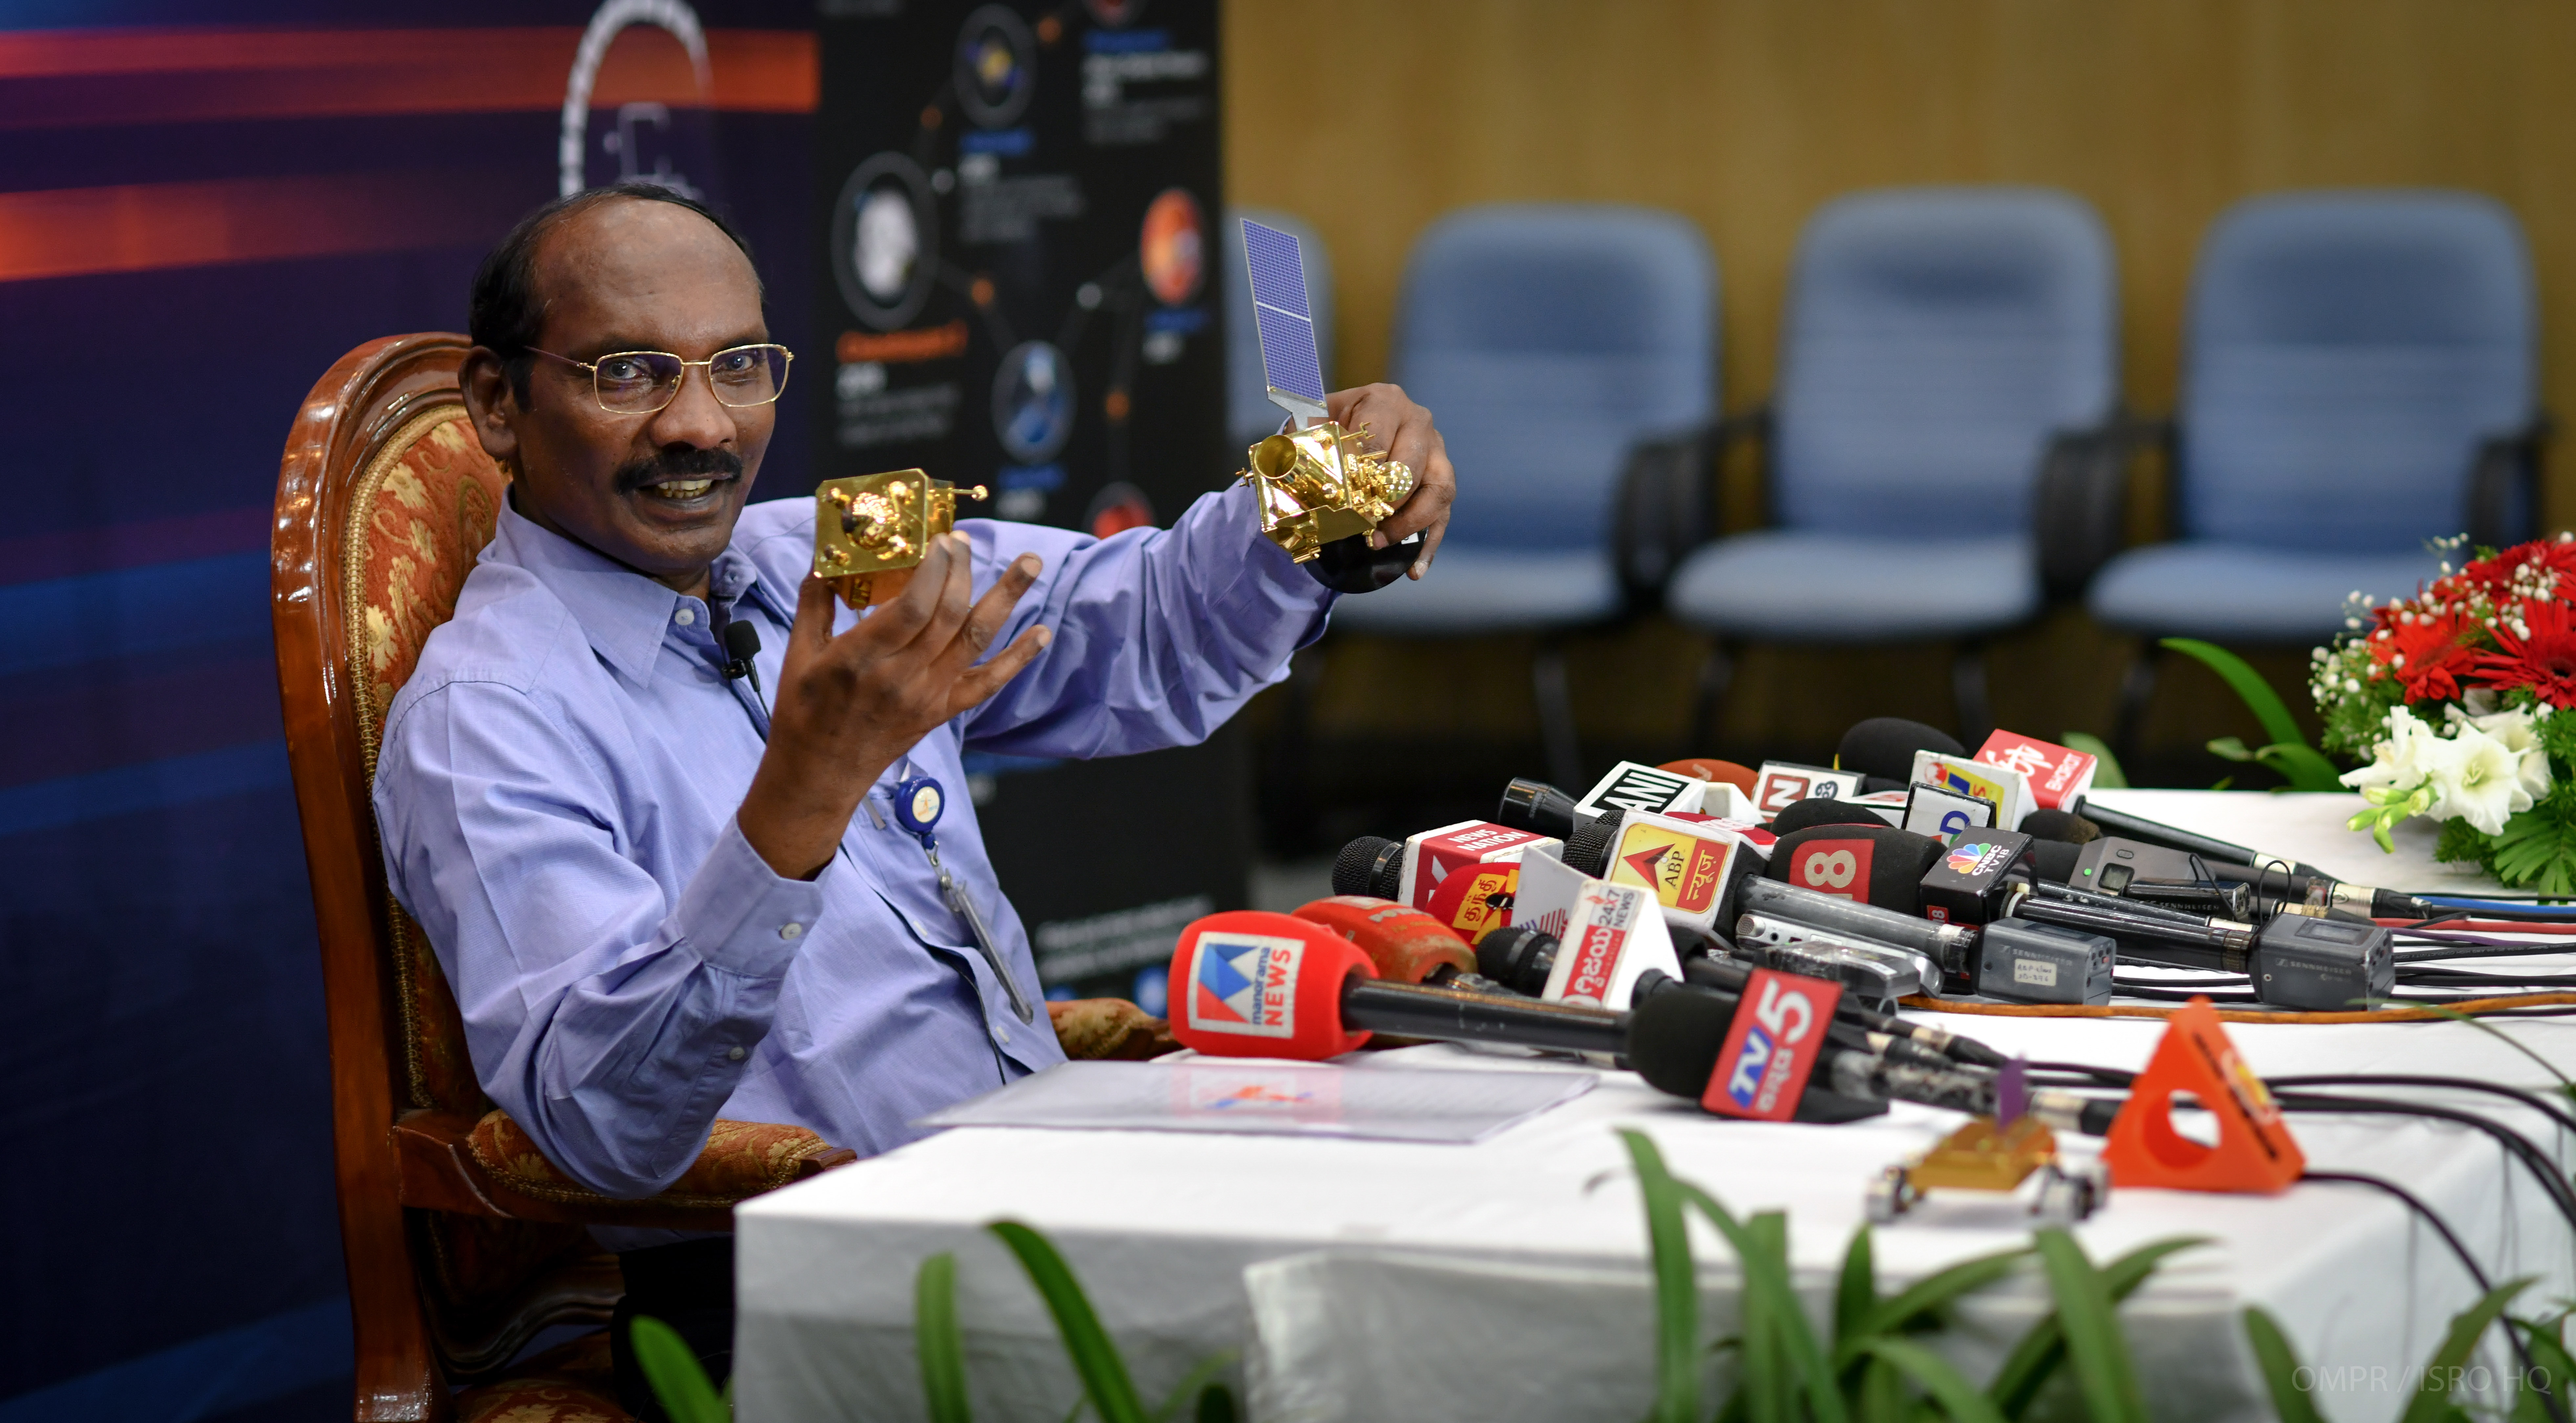 Press Meet - Briefing by Dr. K Sivan, Chairman, ISRO